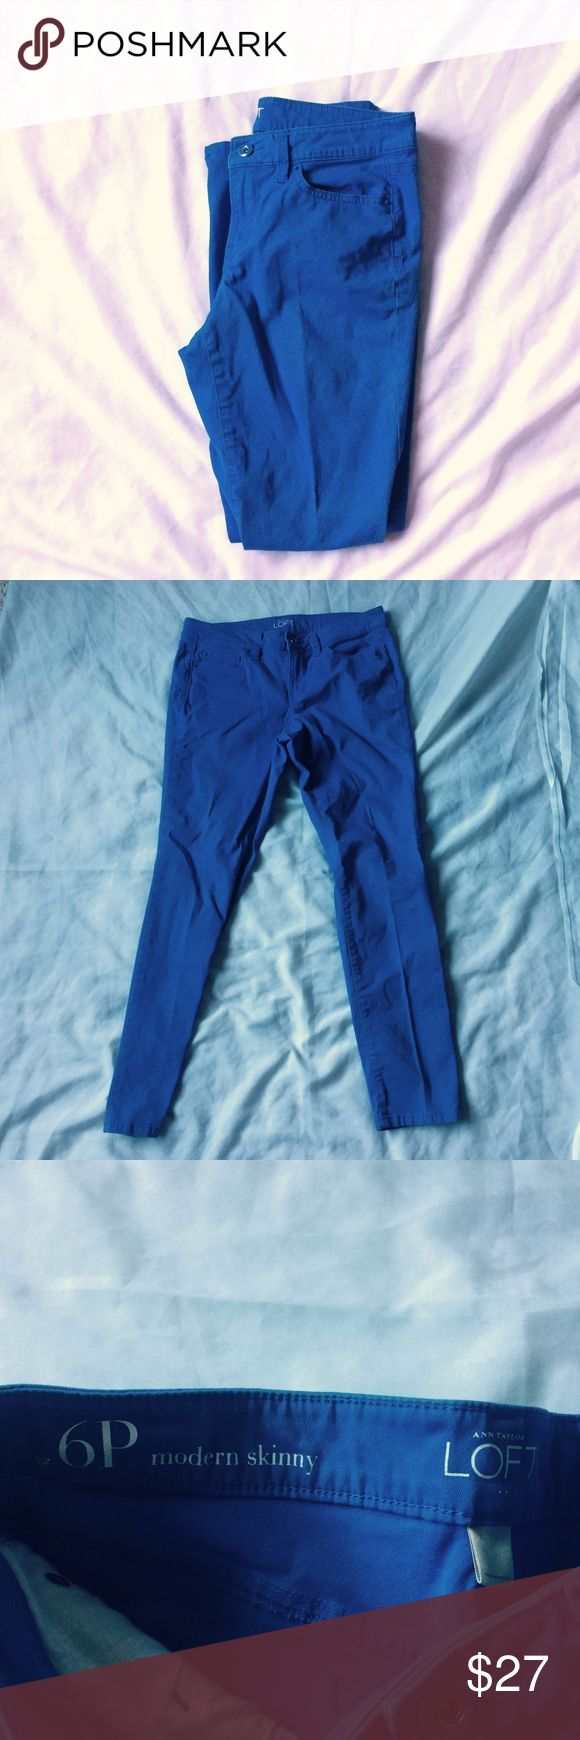 Loft blue skinny pants Nice loft blue modern skinny pants. Worn only once. Size 6 petite. Very soft feel. Looks great with a cute shirt and flip flops! LOFT Pants Ankle & Cropped